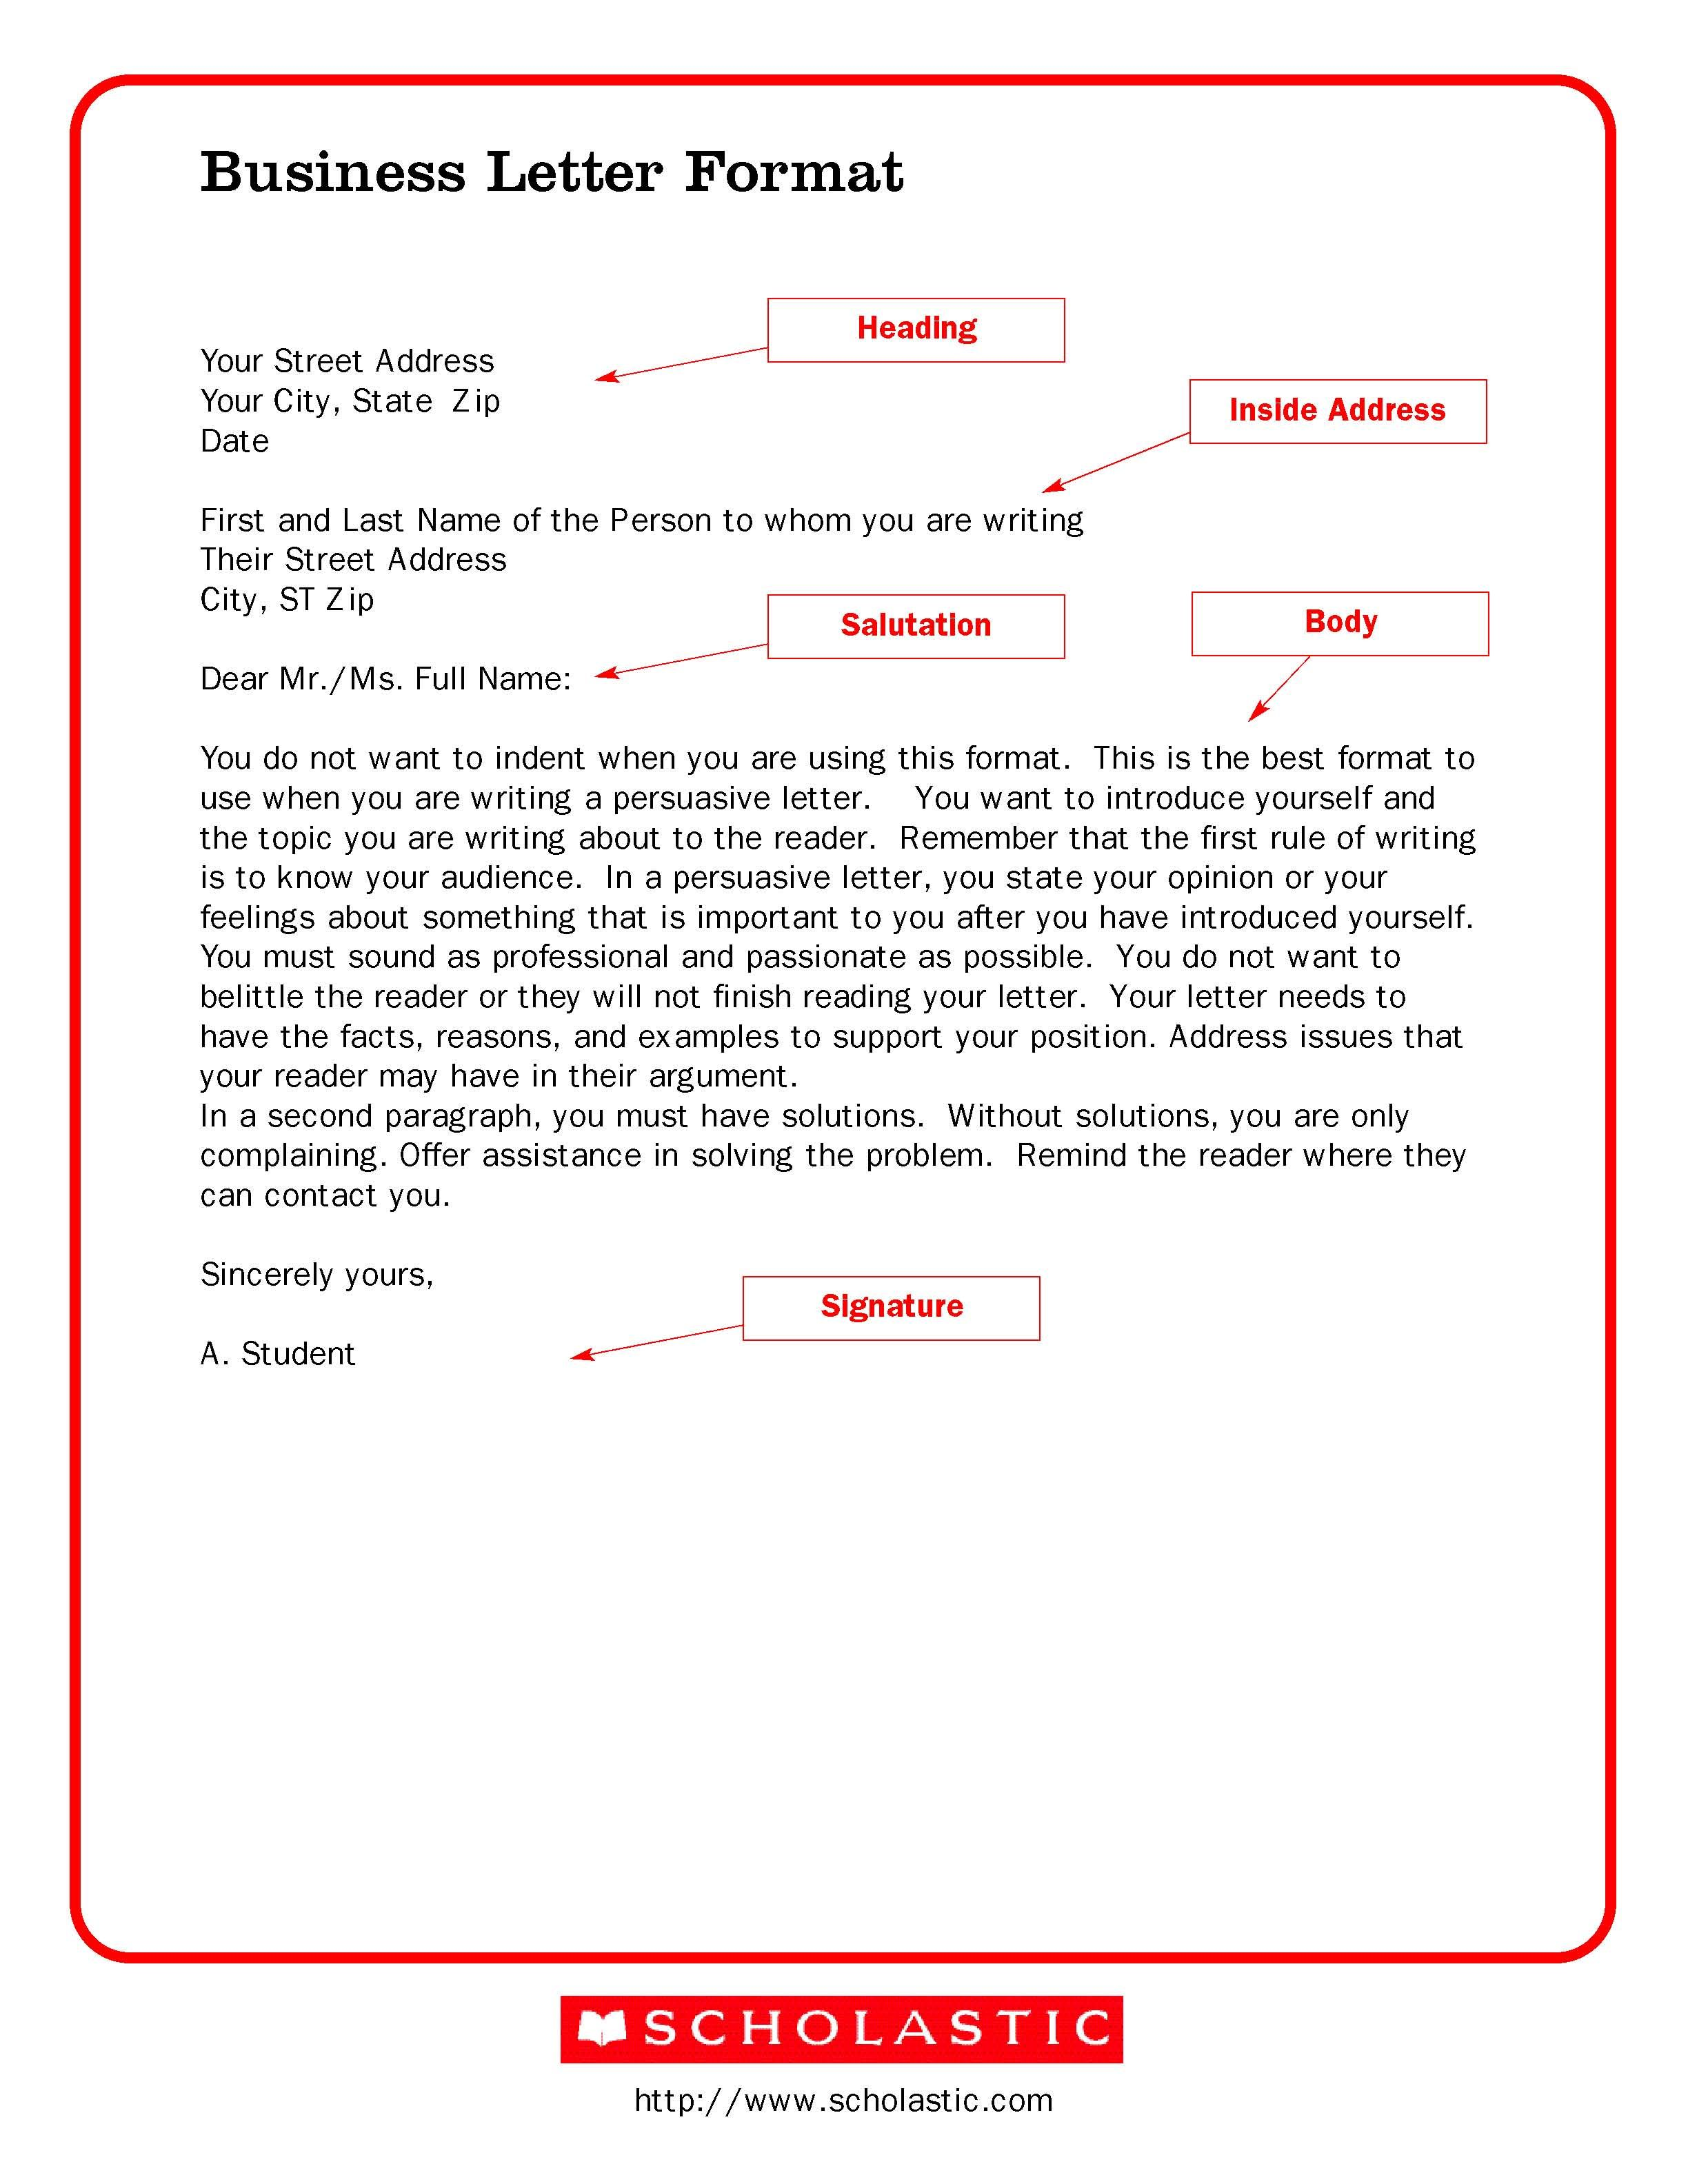 printable sample business letter template form - Business Letter Format Template